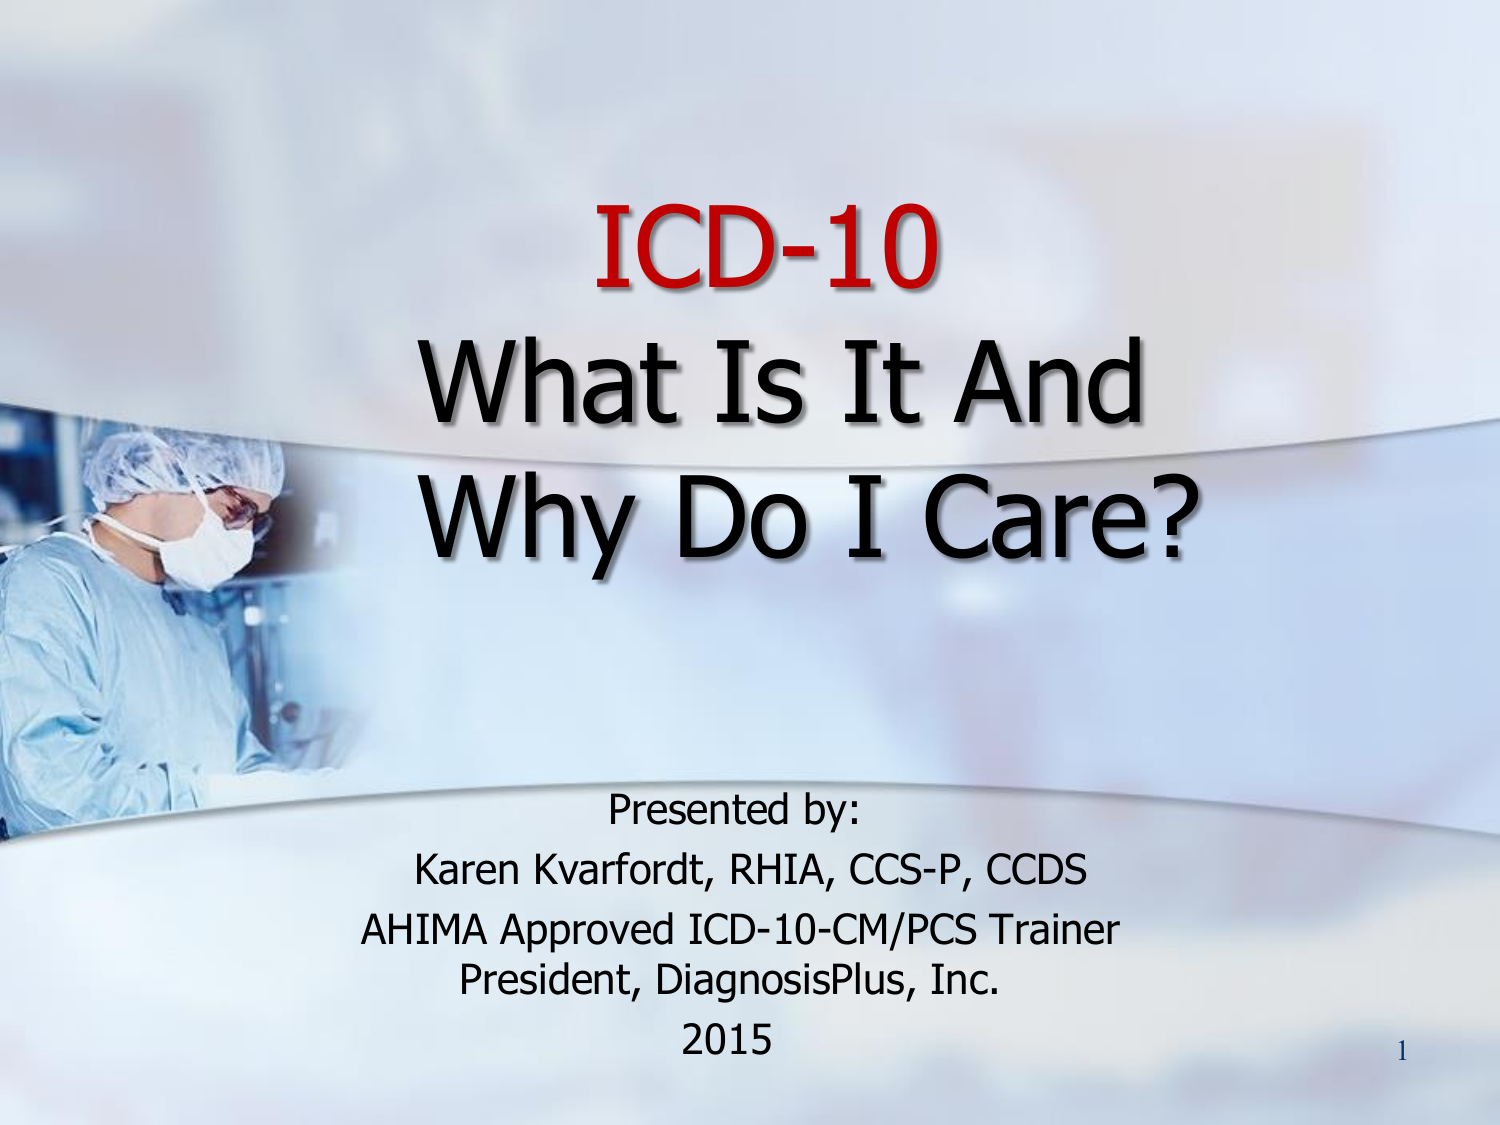 What is ICD-10 and why do I care?